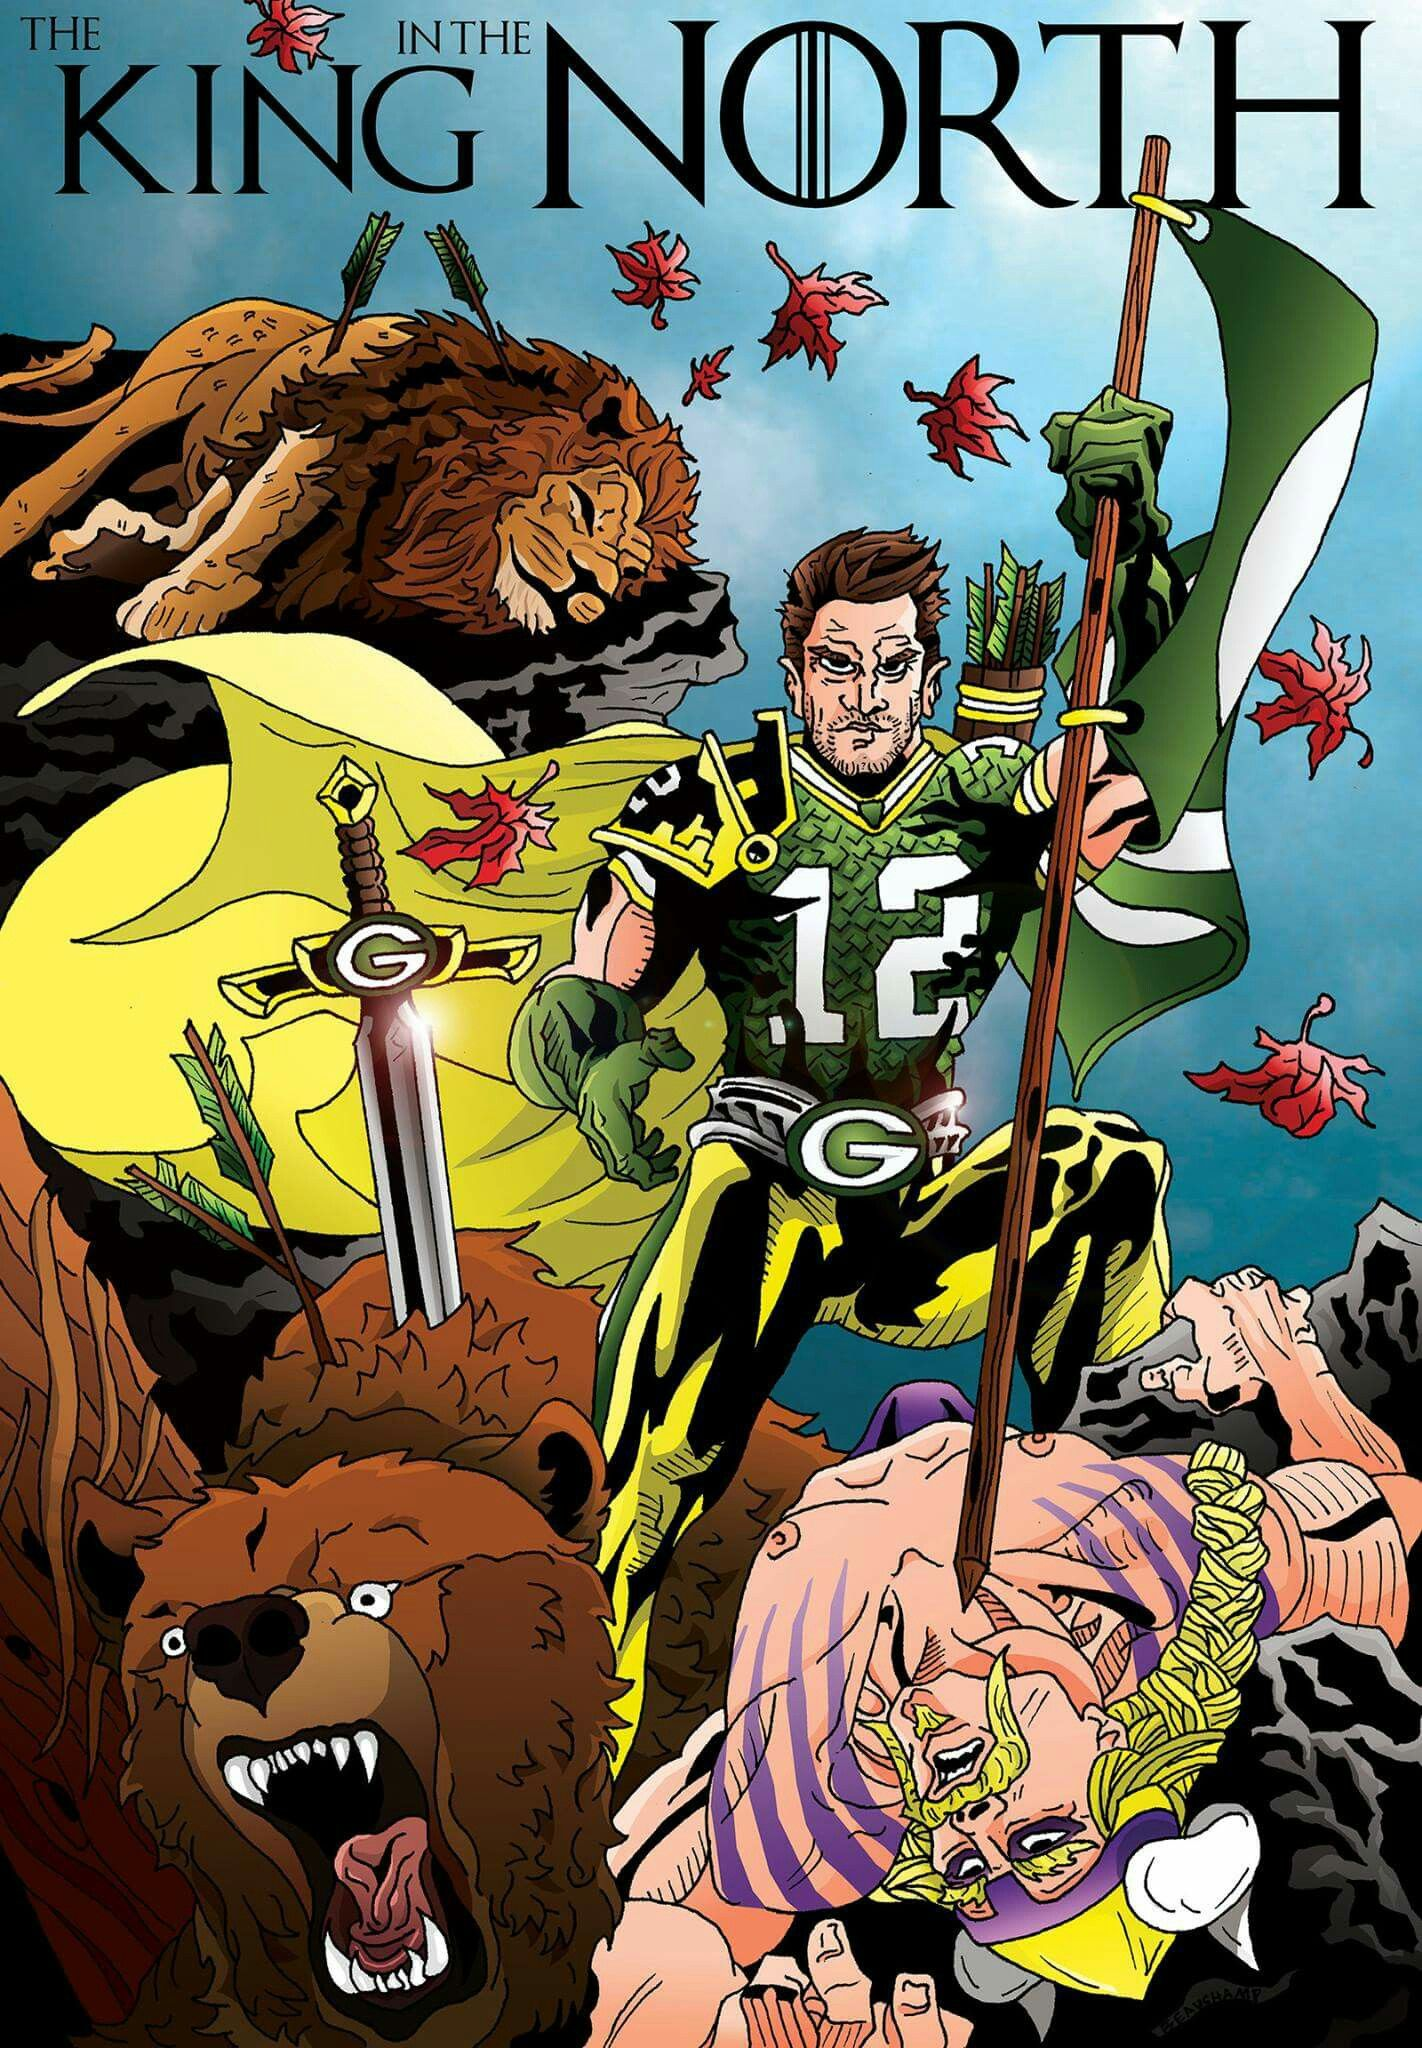 King Of The North Green Bay Packers Wallpaper Green Bay Packers Funny Green Bay Packers Football